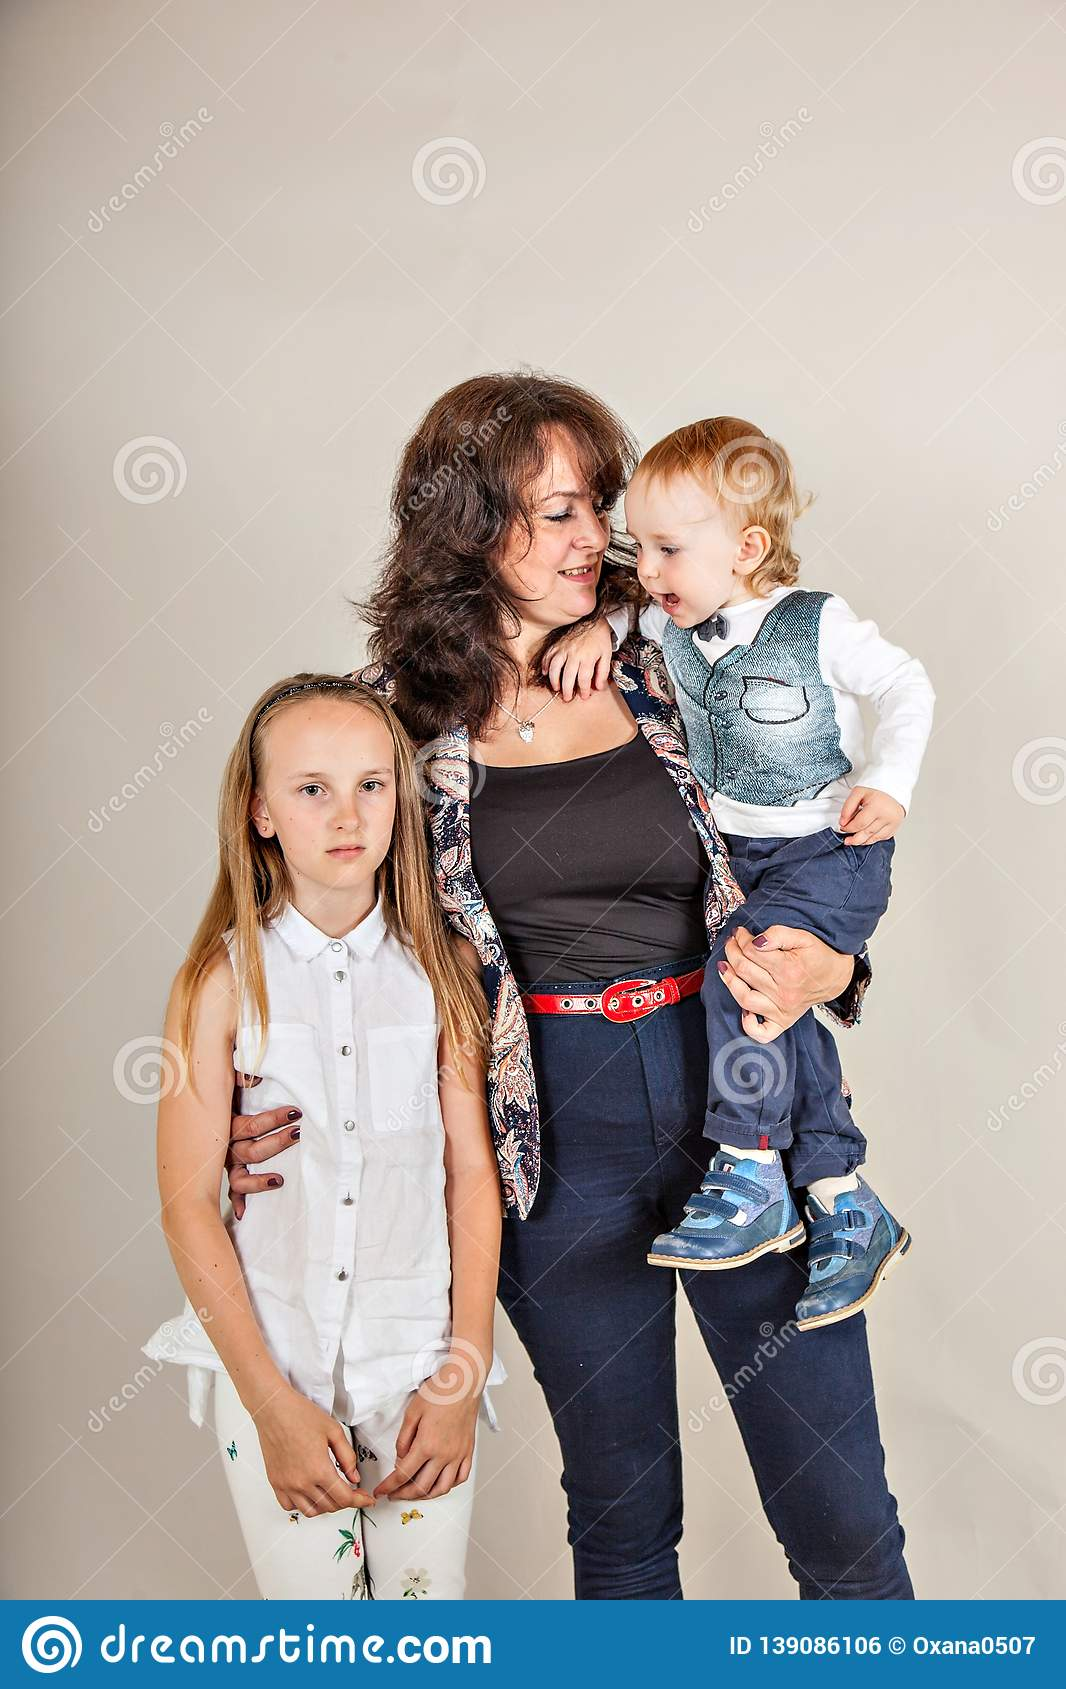 Growth portrait of happy mother with two children isolated gray background.